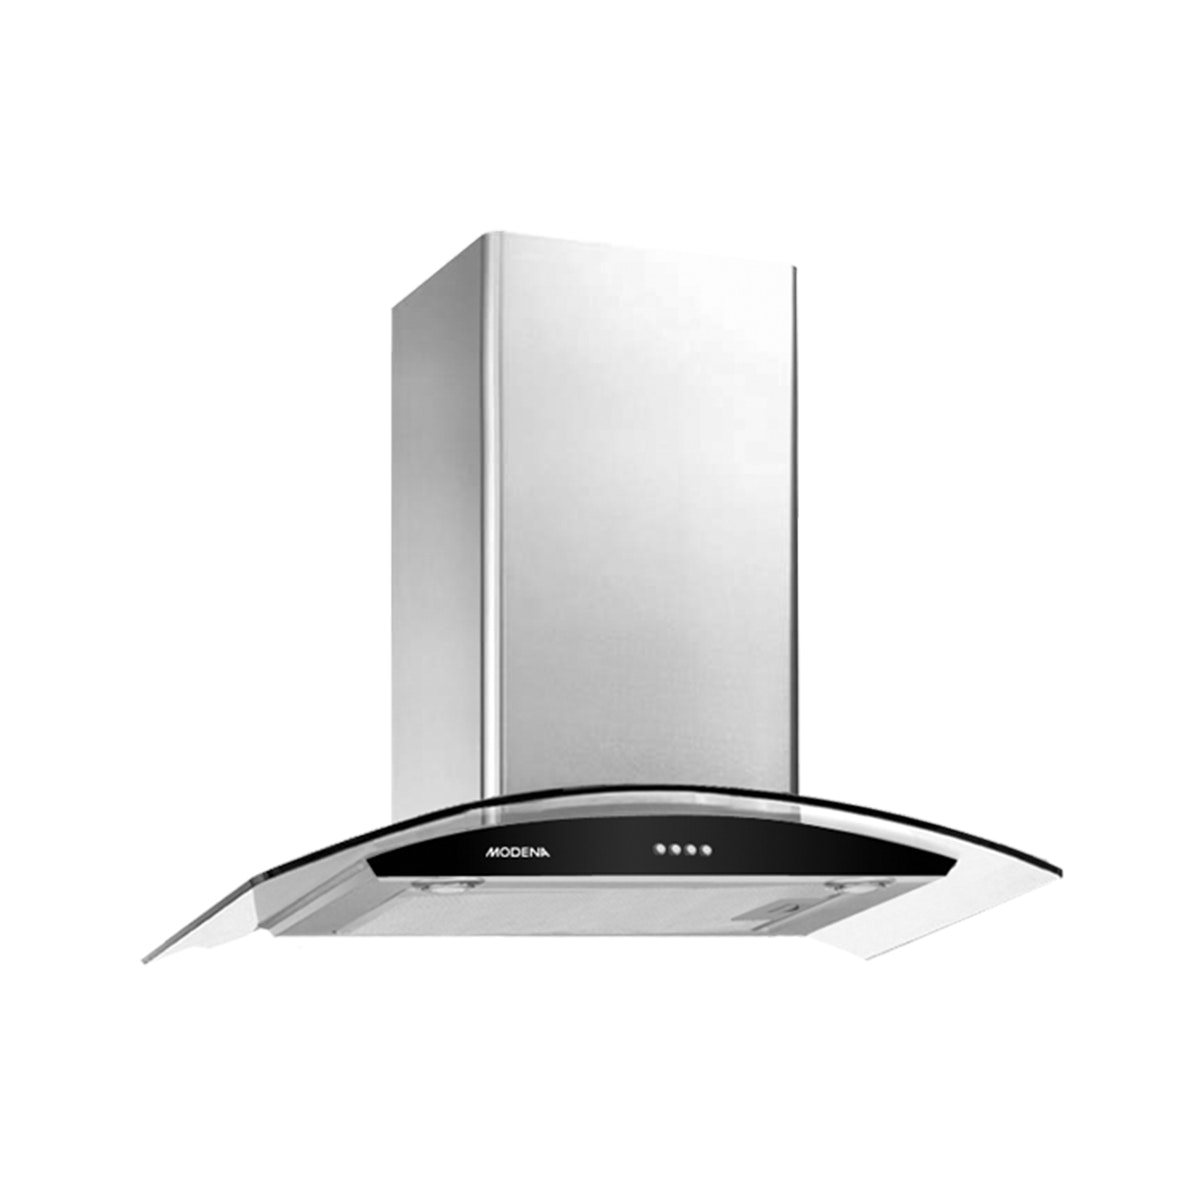 Modena Cooker Chimney Hood Wall 60 cm FERRARA CX 6301